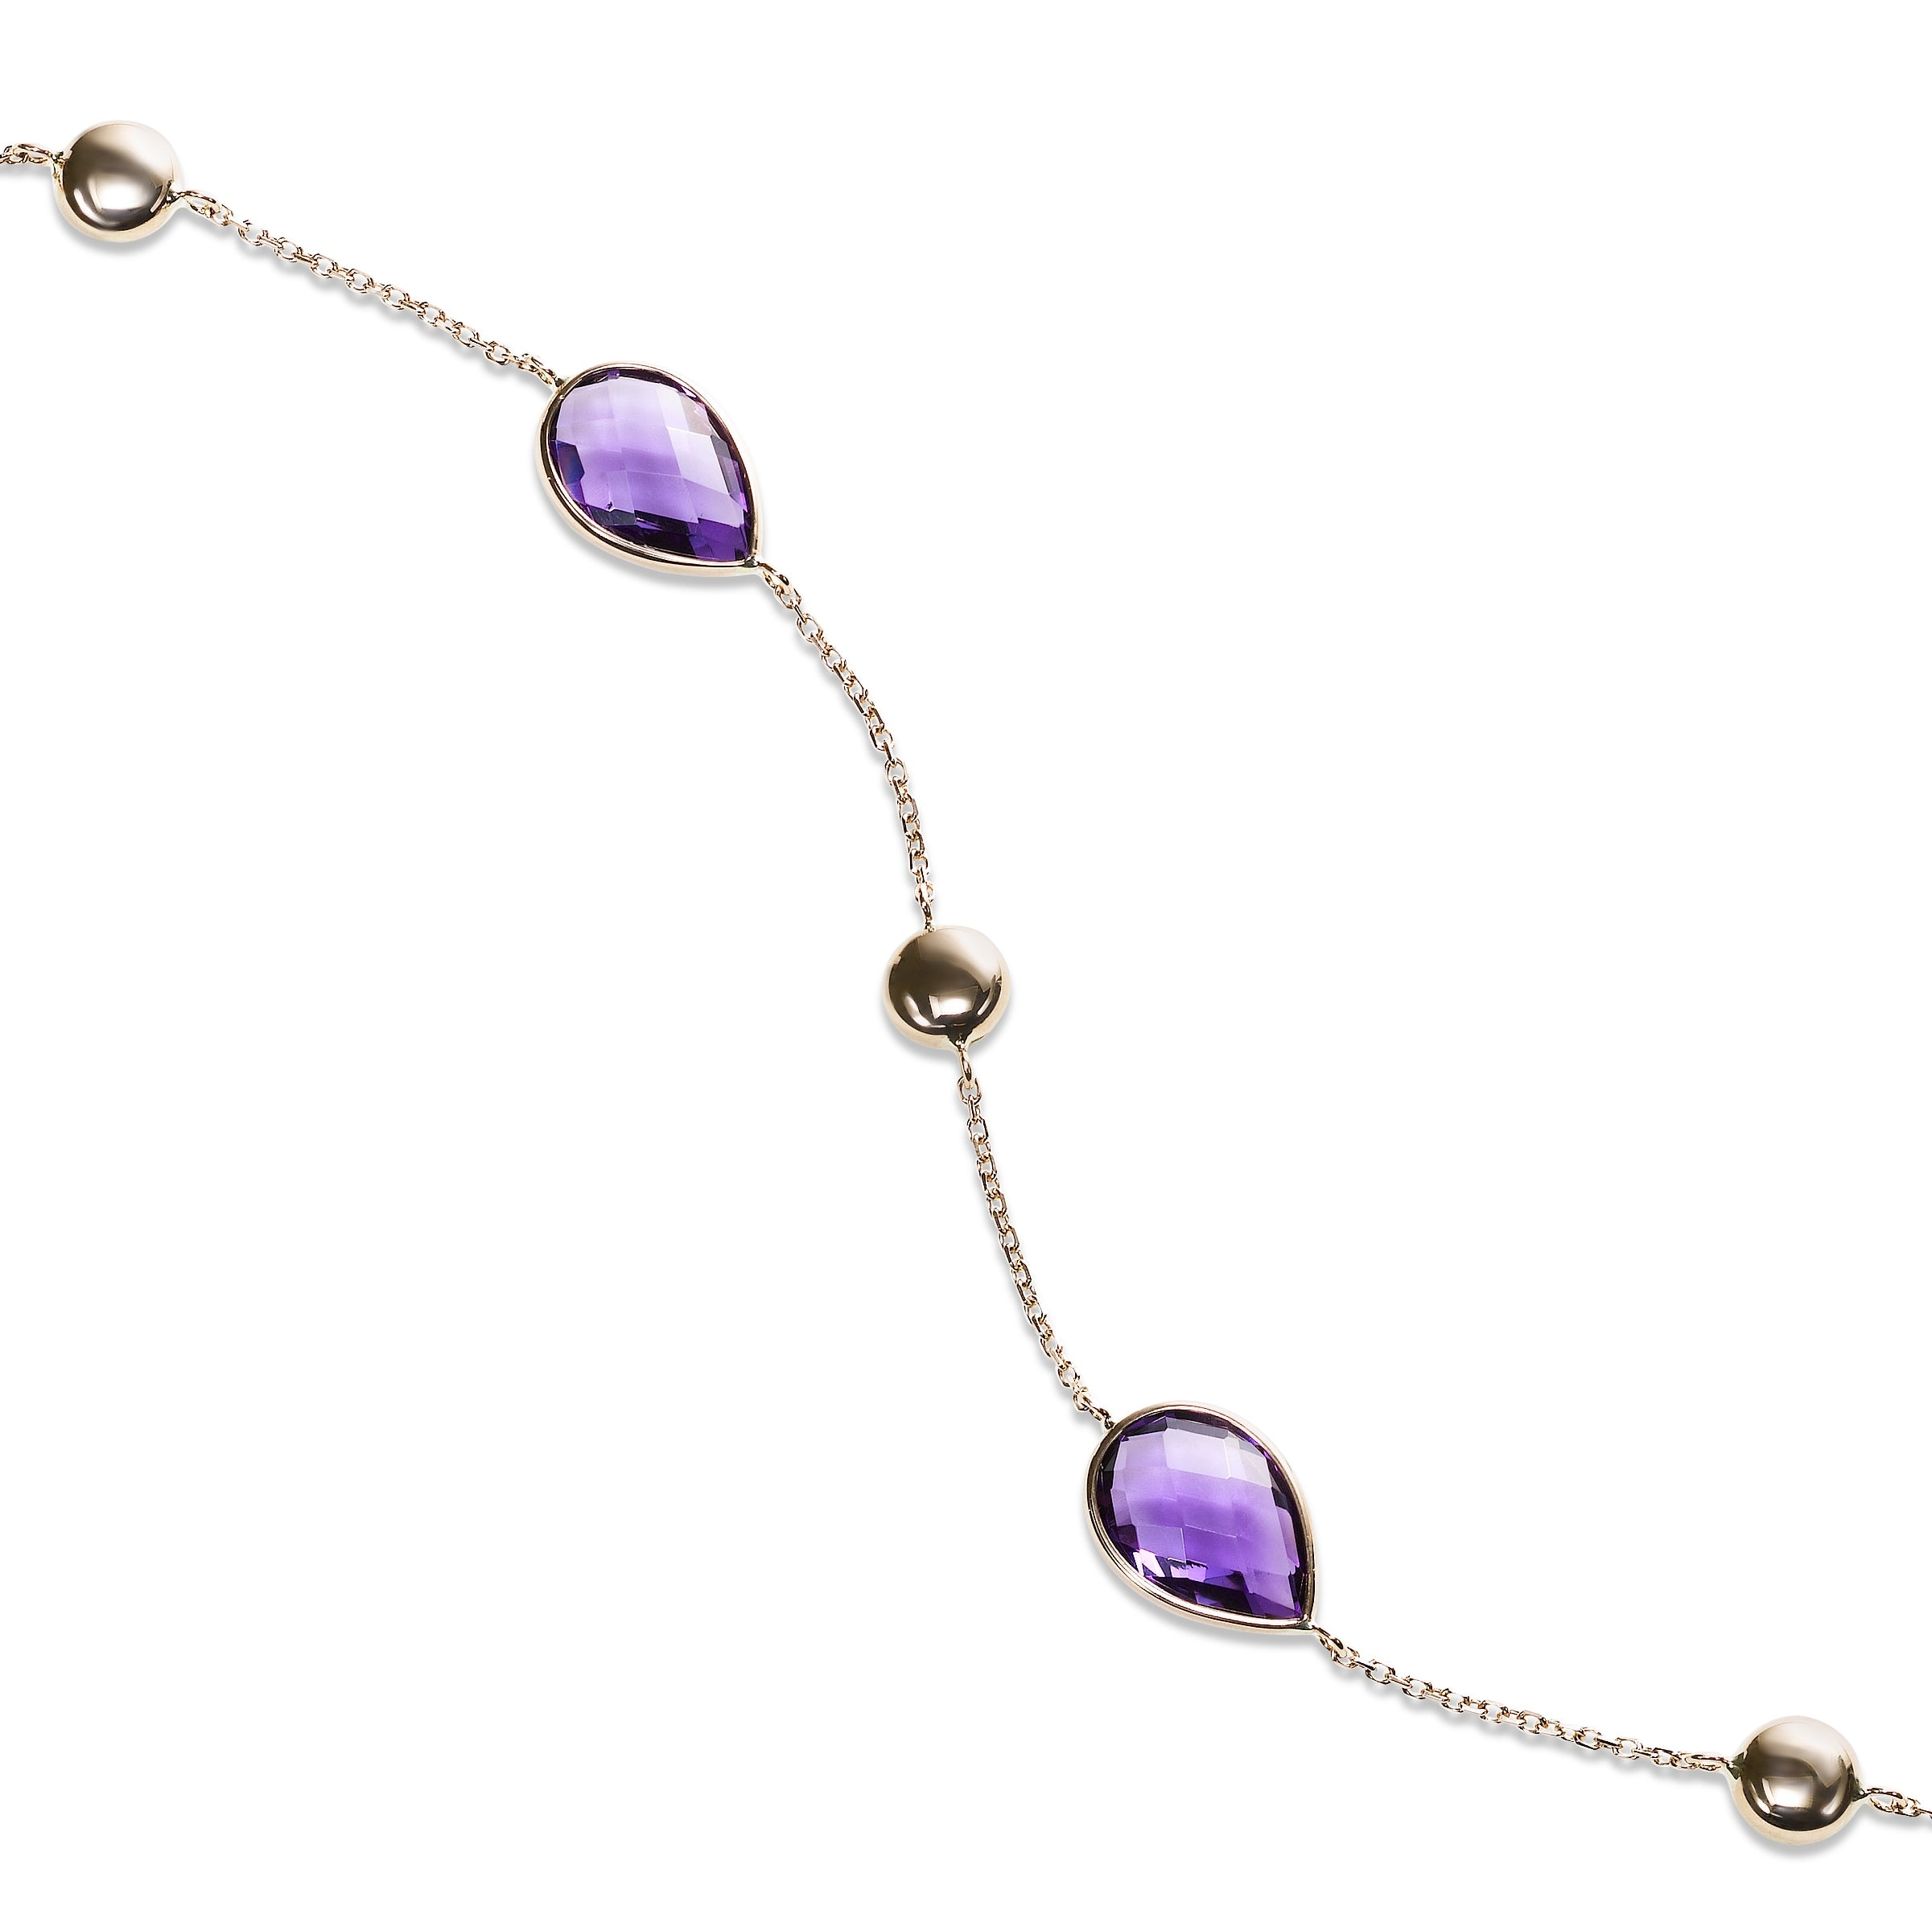 Pear Shaped Amethyst Flexible Bracelet, 14K Rose Gold